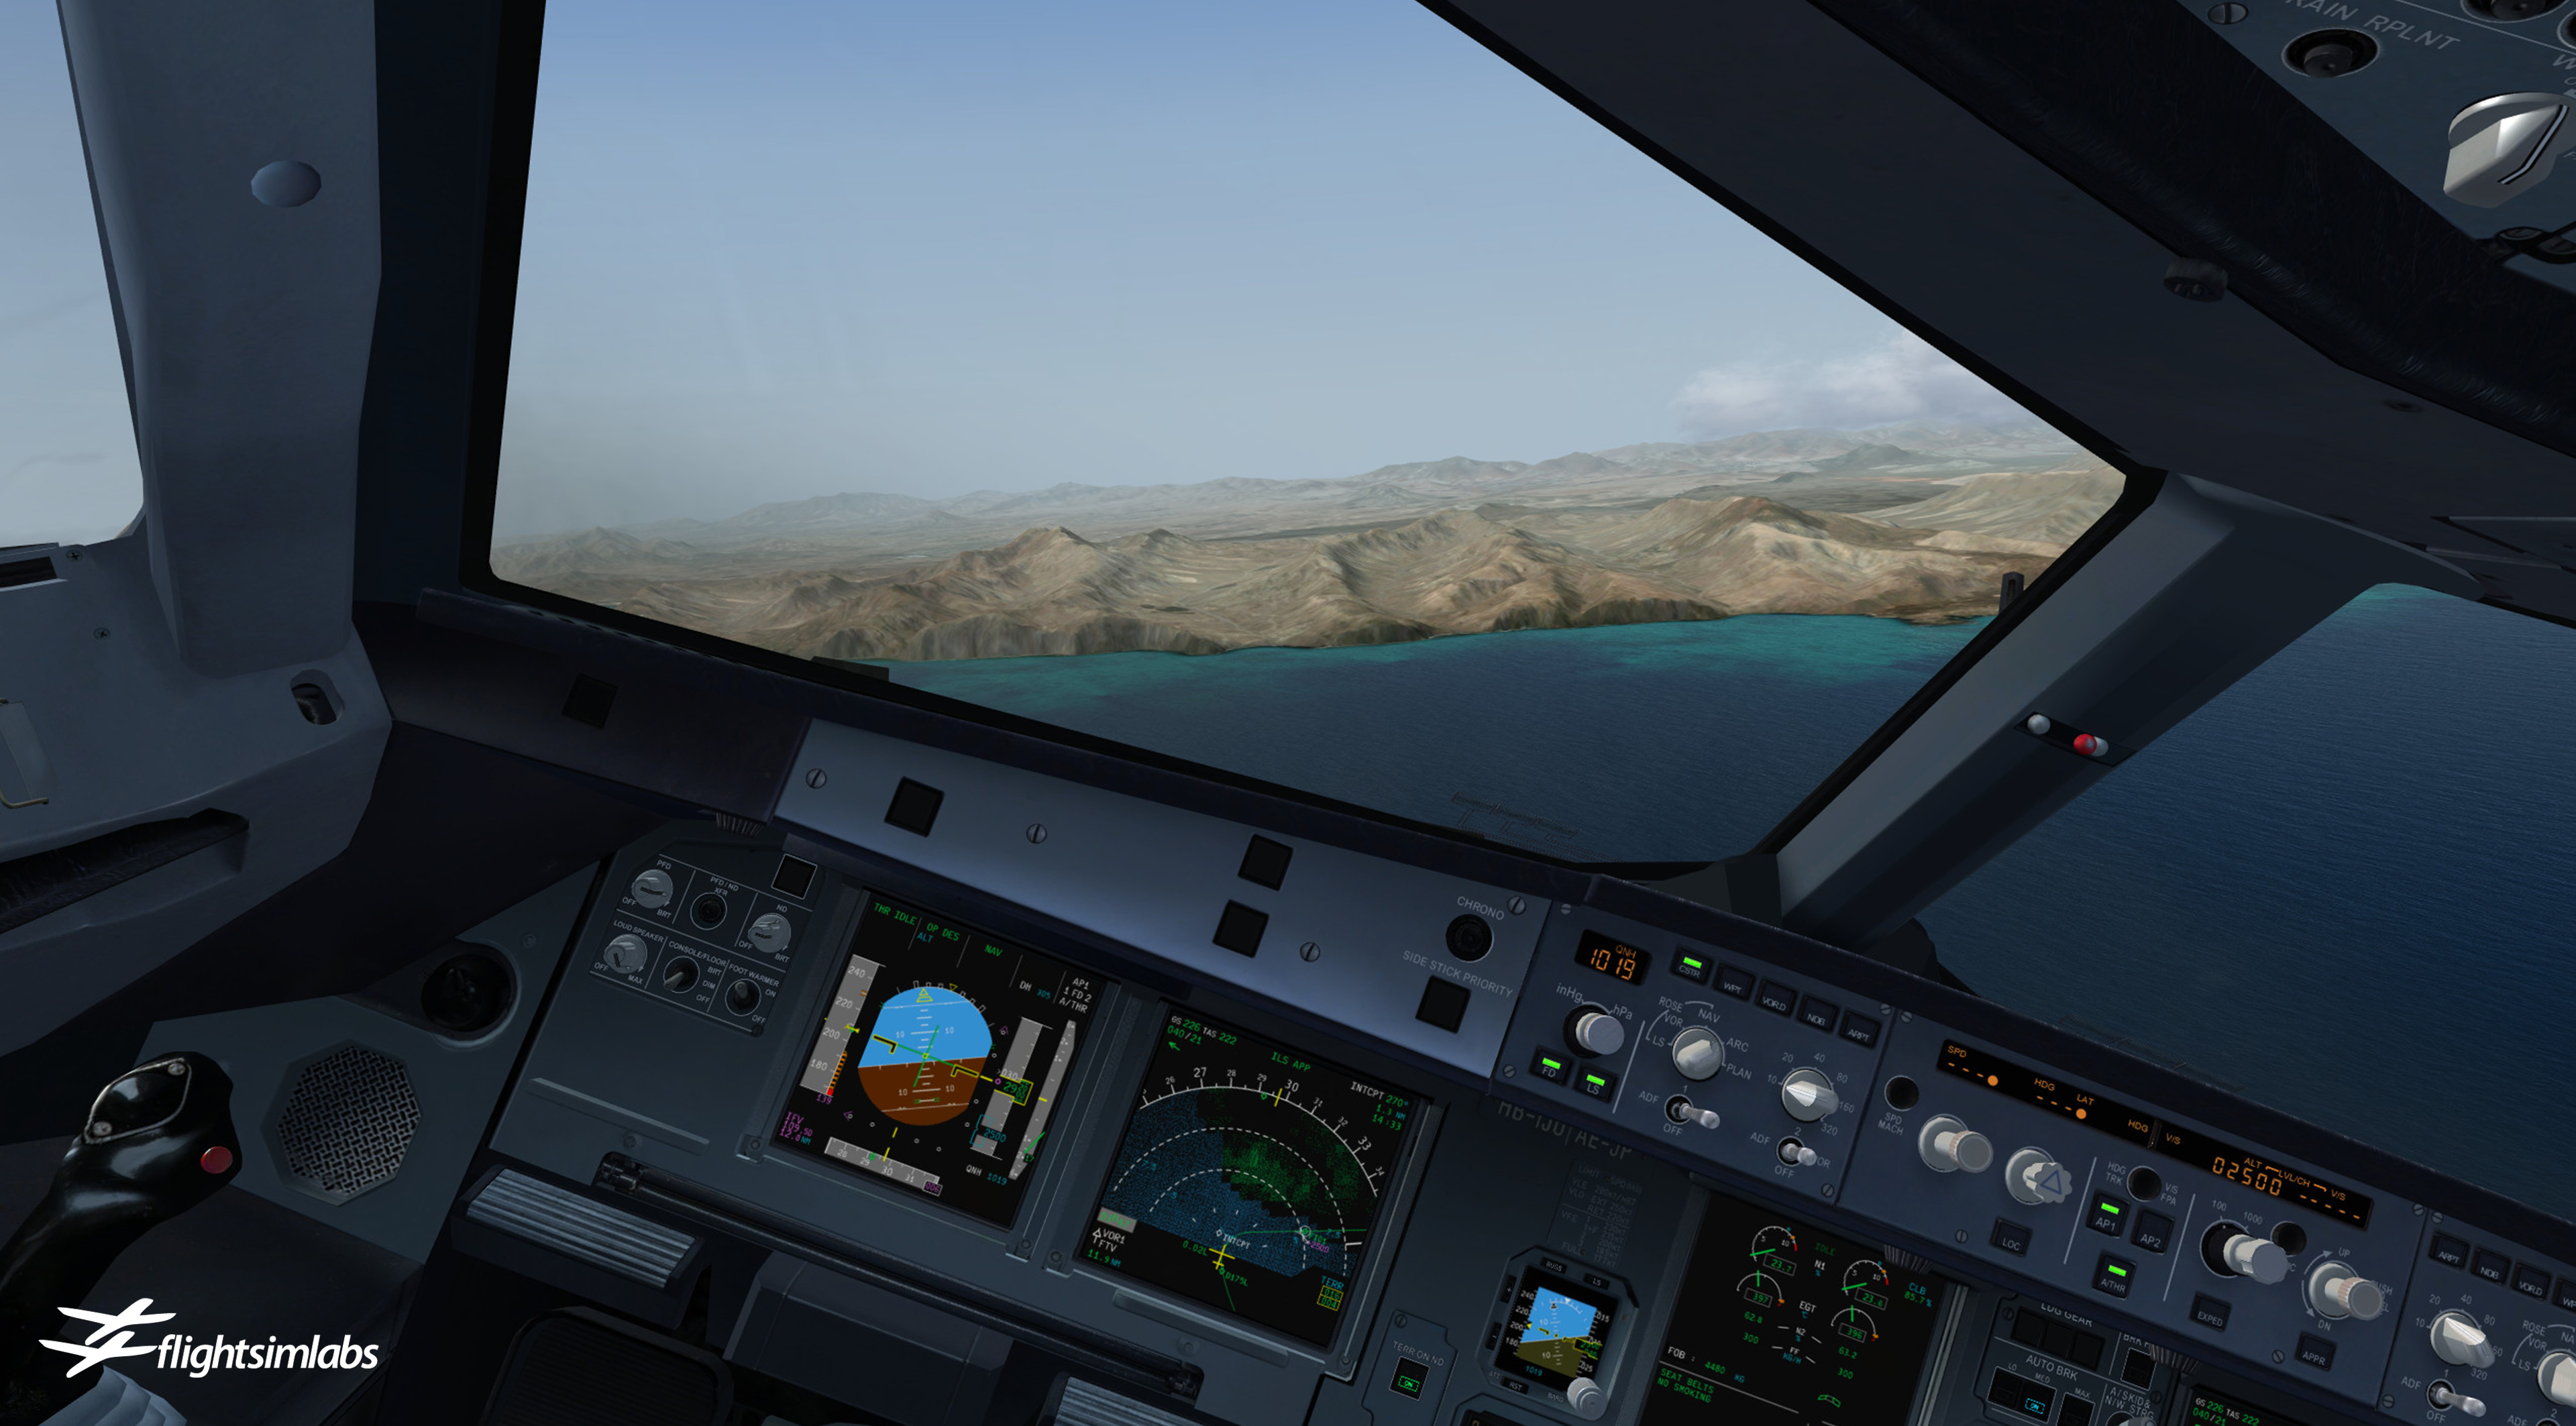 Preview Shots of Virtual Cockpit in P3D v4 - General Discussion